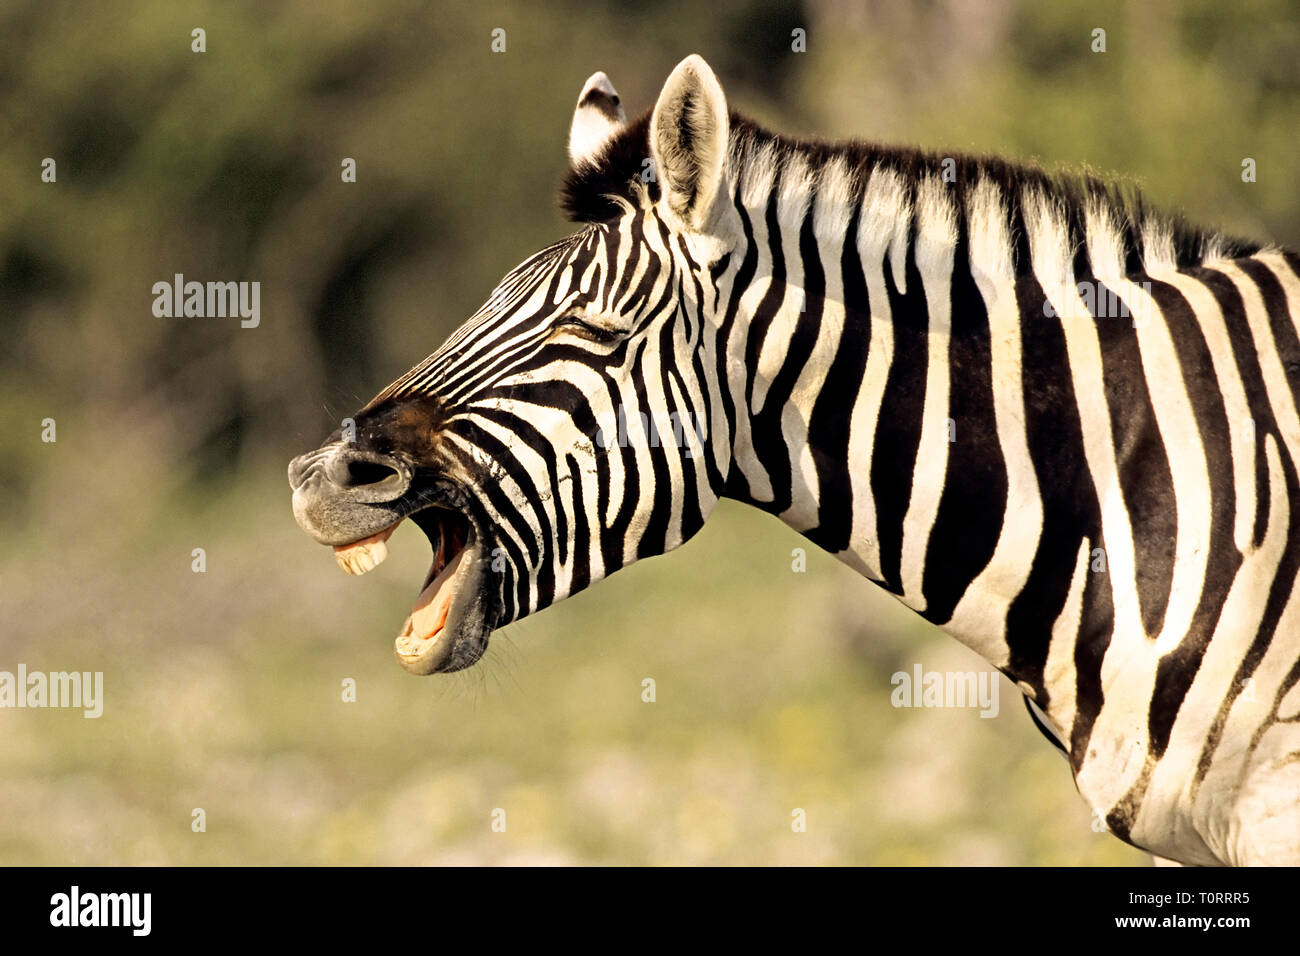 Africa, Namibia.  Grant's or Burchell's Zebra (Equus burchelli bohmi) naying loudly. - Stock Image